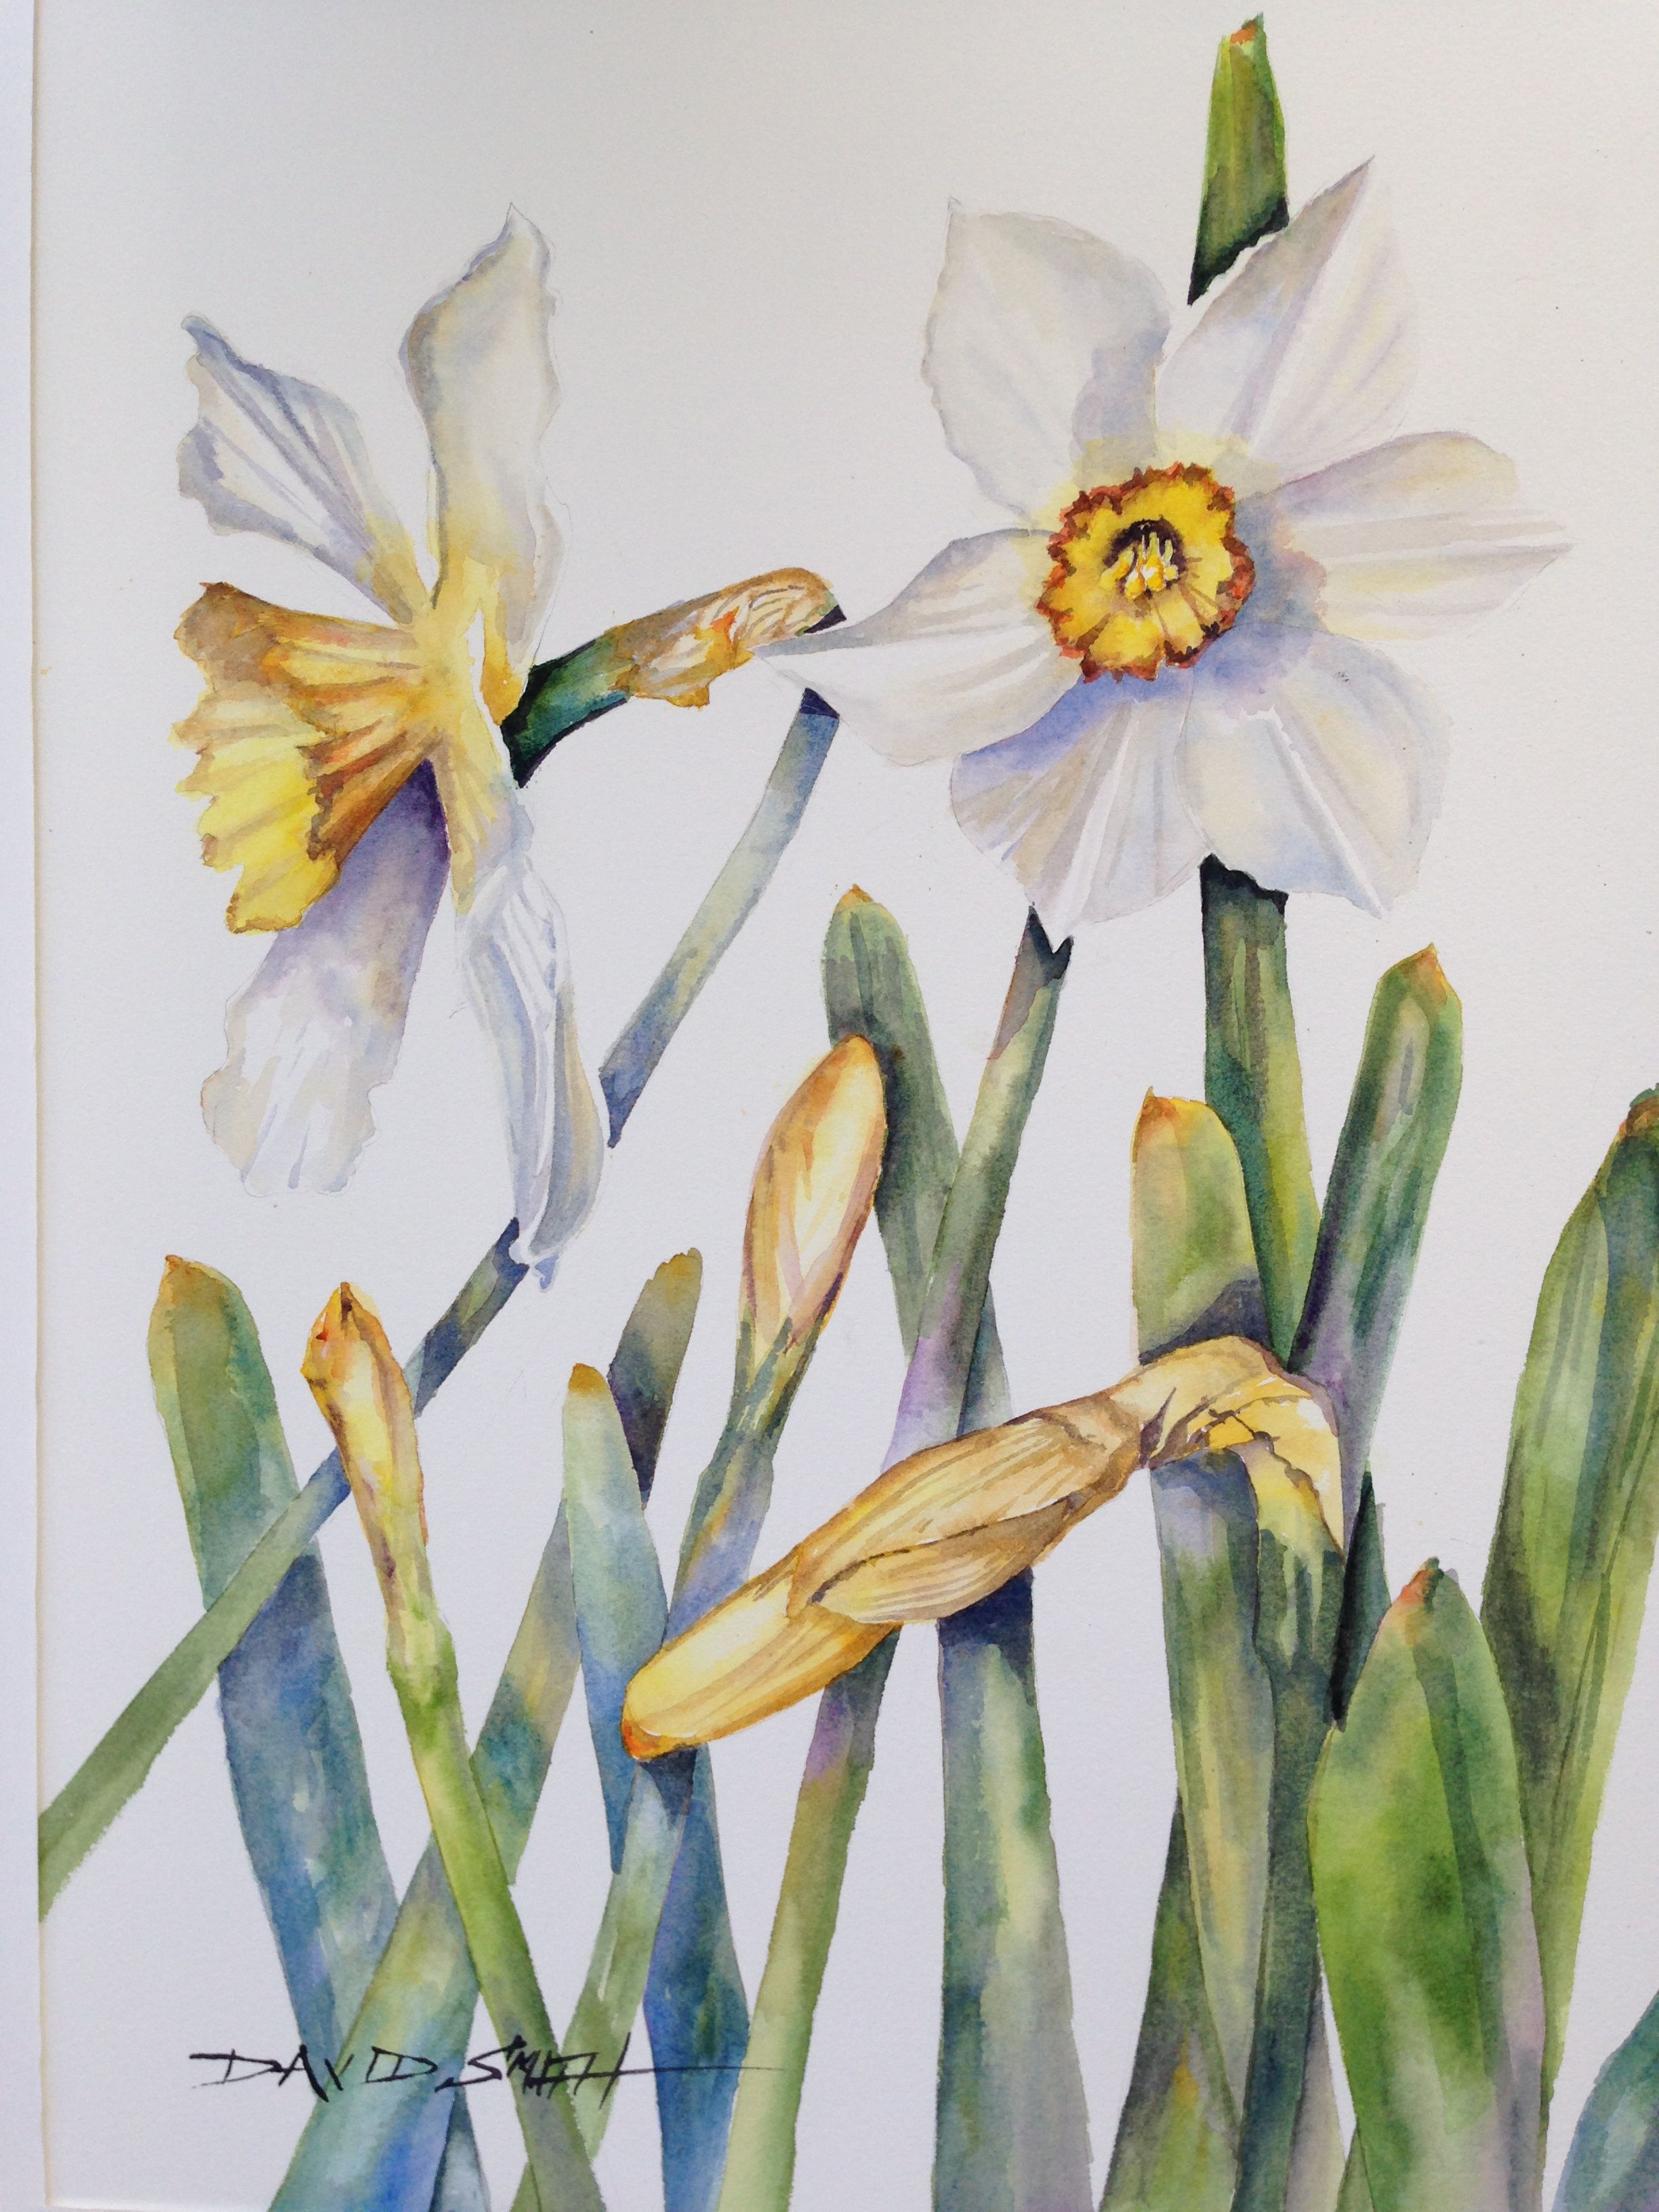 Daffy Watercolor By David Smith Go To Island Boy Studio On Facebook Flower Painting Watercolor Cards Art